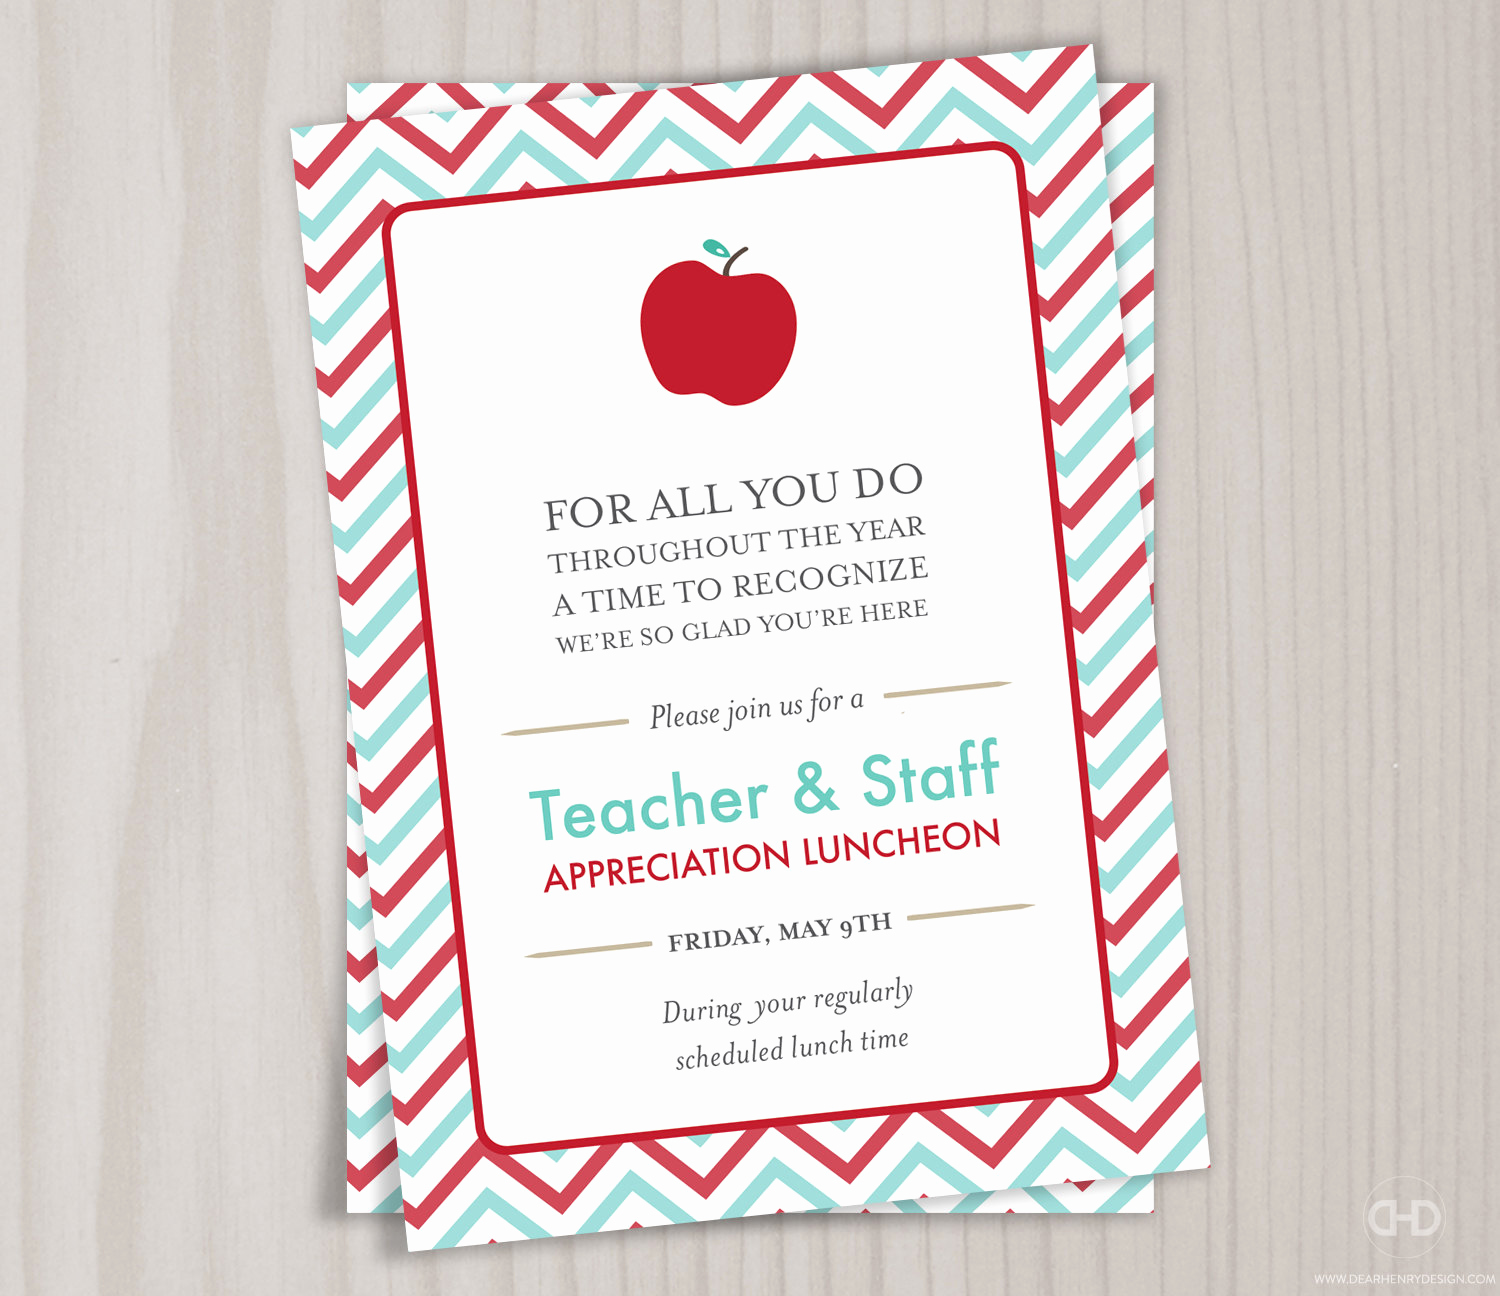 Teacher Appreciation Luncheon Invitation Wording Awesome Teacher Appreciation Invitation Printable Teacher Thank You